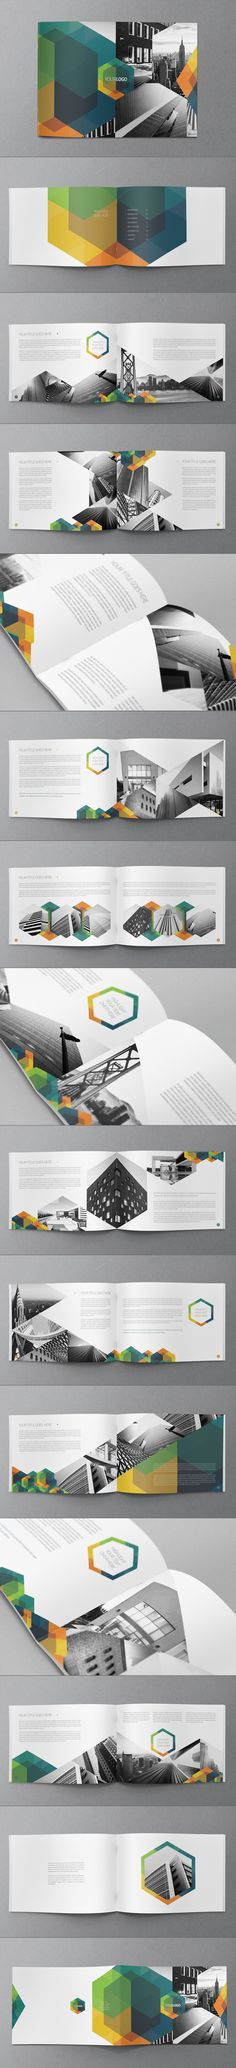 Hexo Brochure Design by Abra Design, via Behance. I love the way the grey makes the color vibrant and vice versa